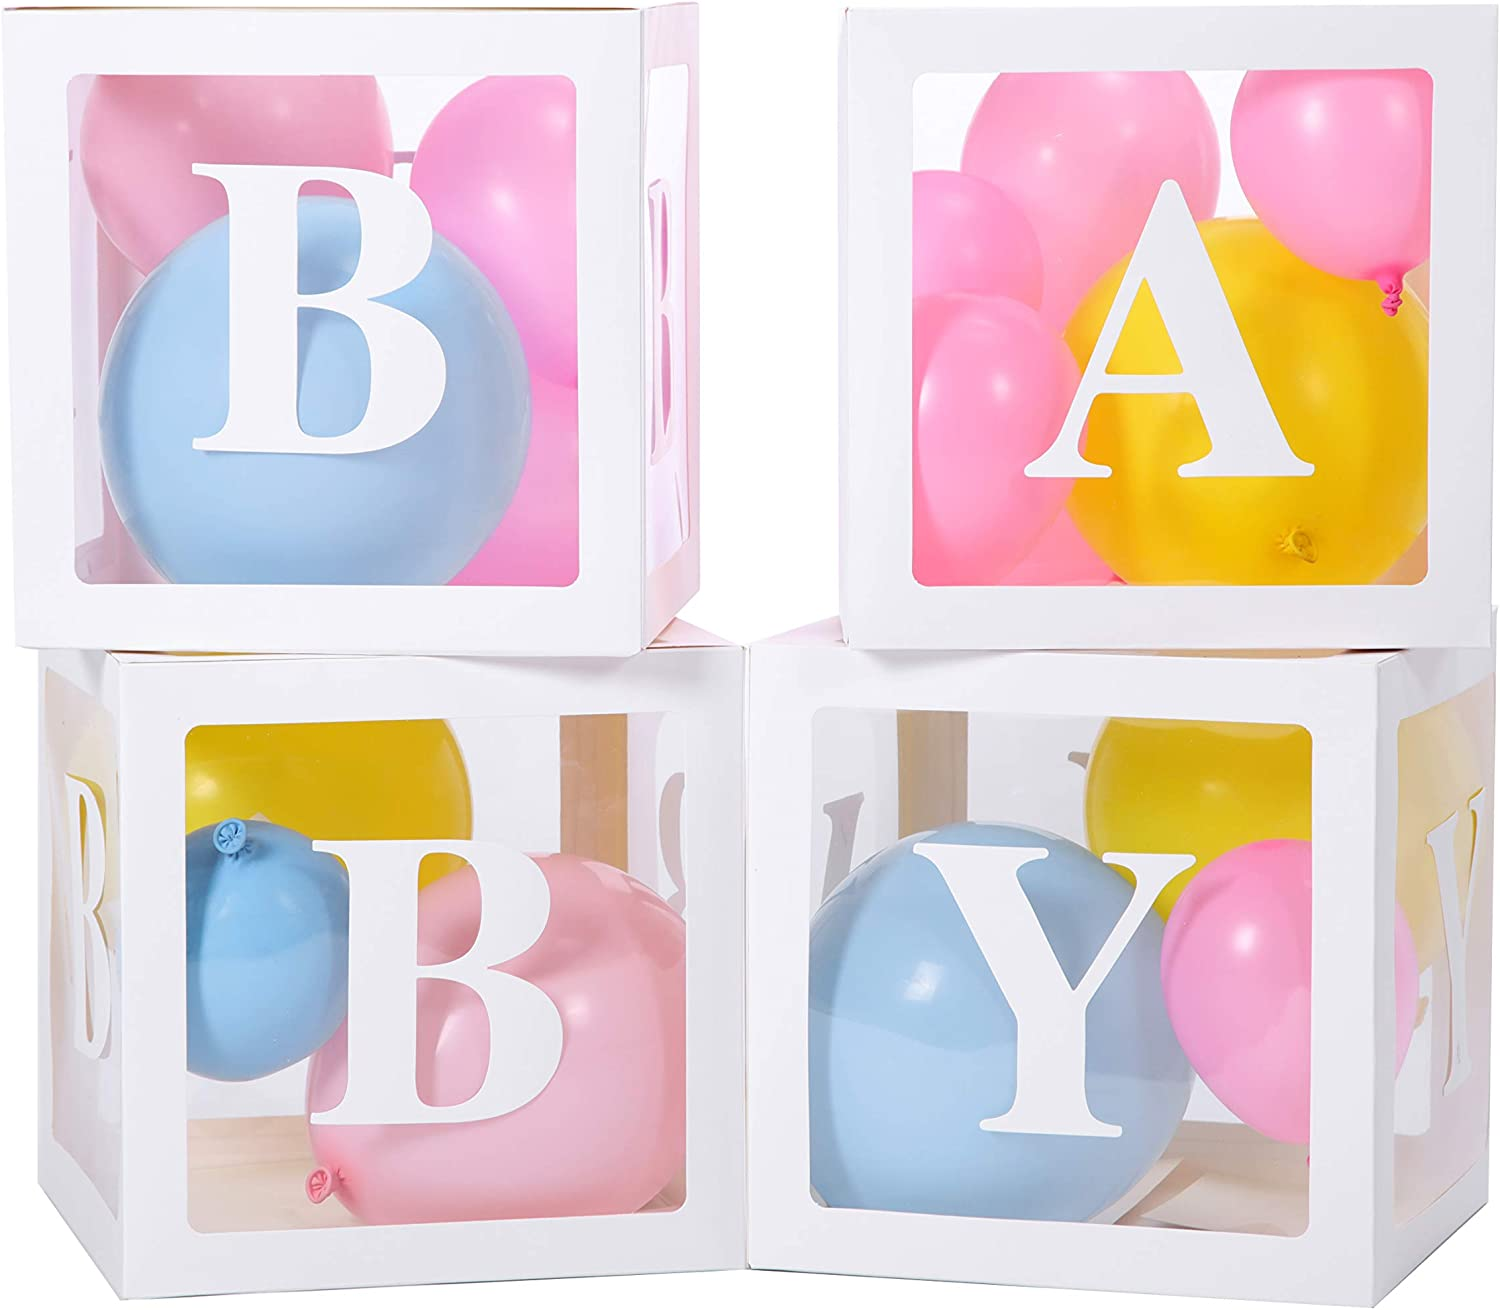 Set of 65 pieces Baby Box Decorations for Baby Shower - Use these Baby Boxes for Baby Shower as Baby Shower Decorations For Gender Reveal Party, Contains Baby Shower Blocks, Baby Boxes with Letters for Baby Shower and Baby Blocks for Baby Shower